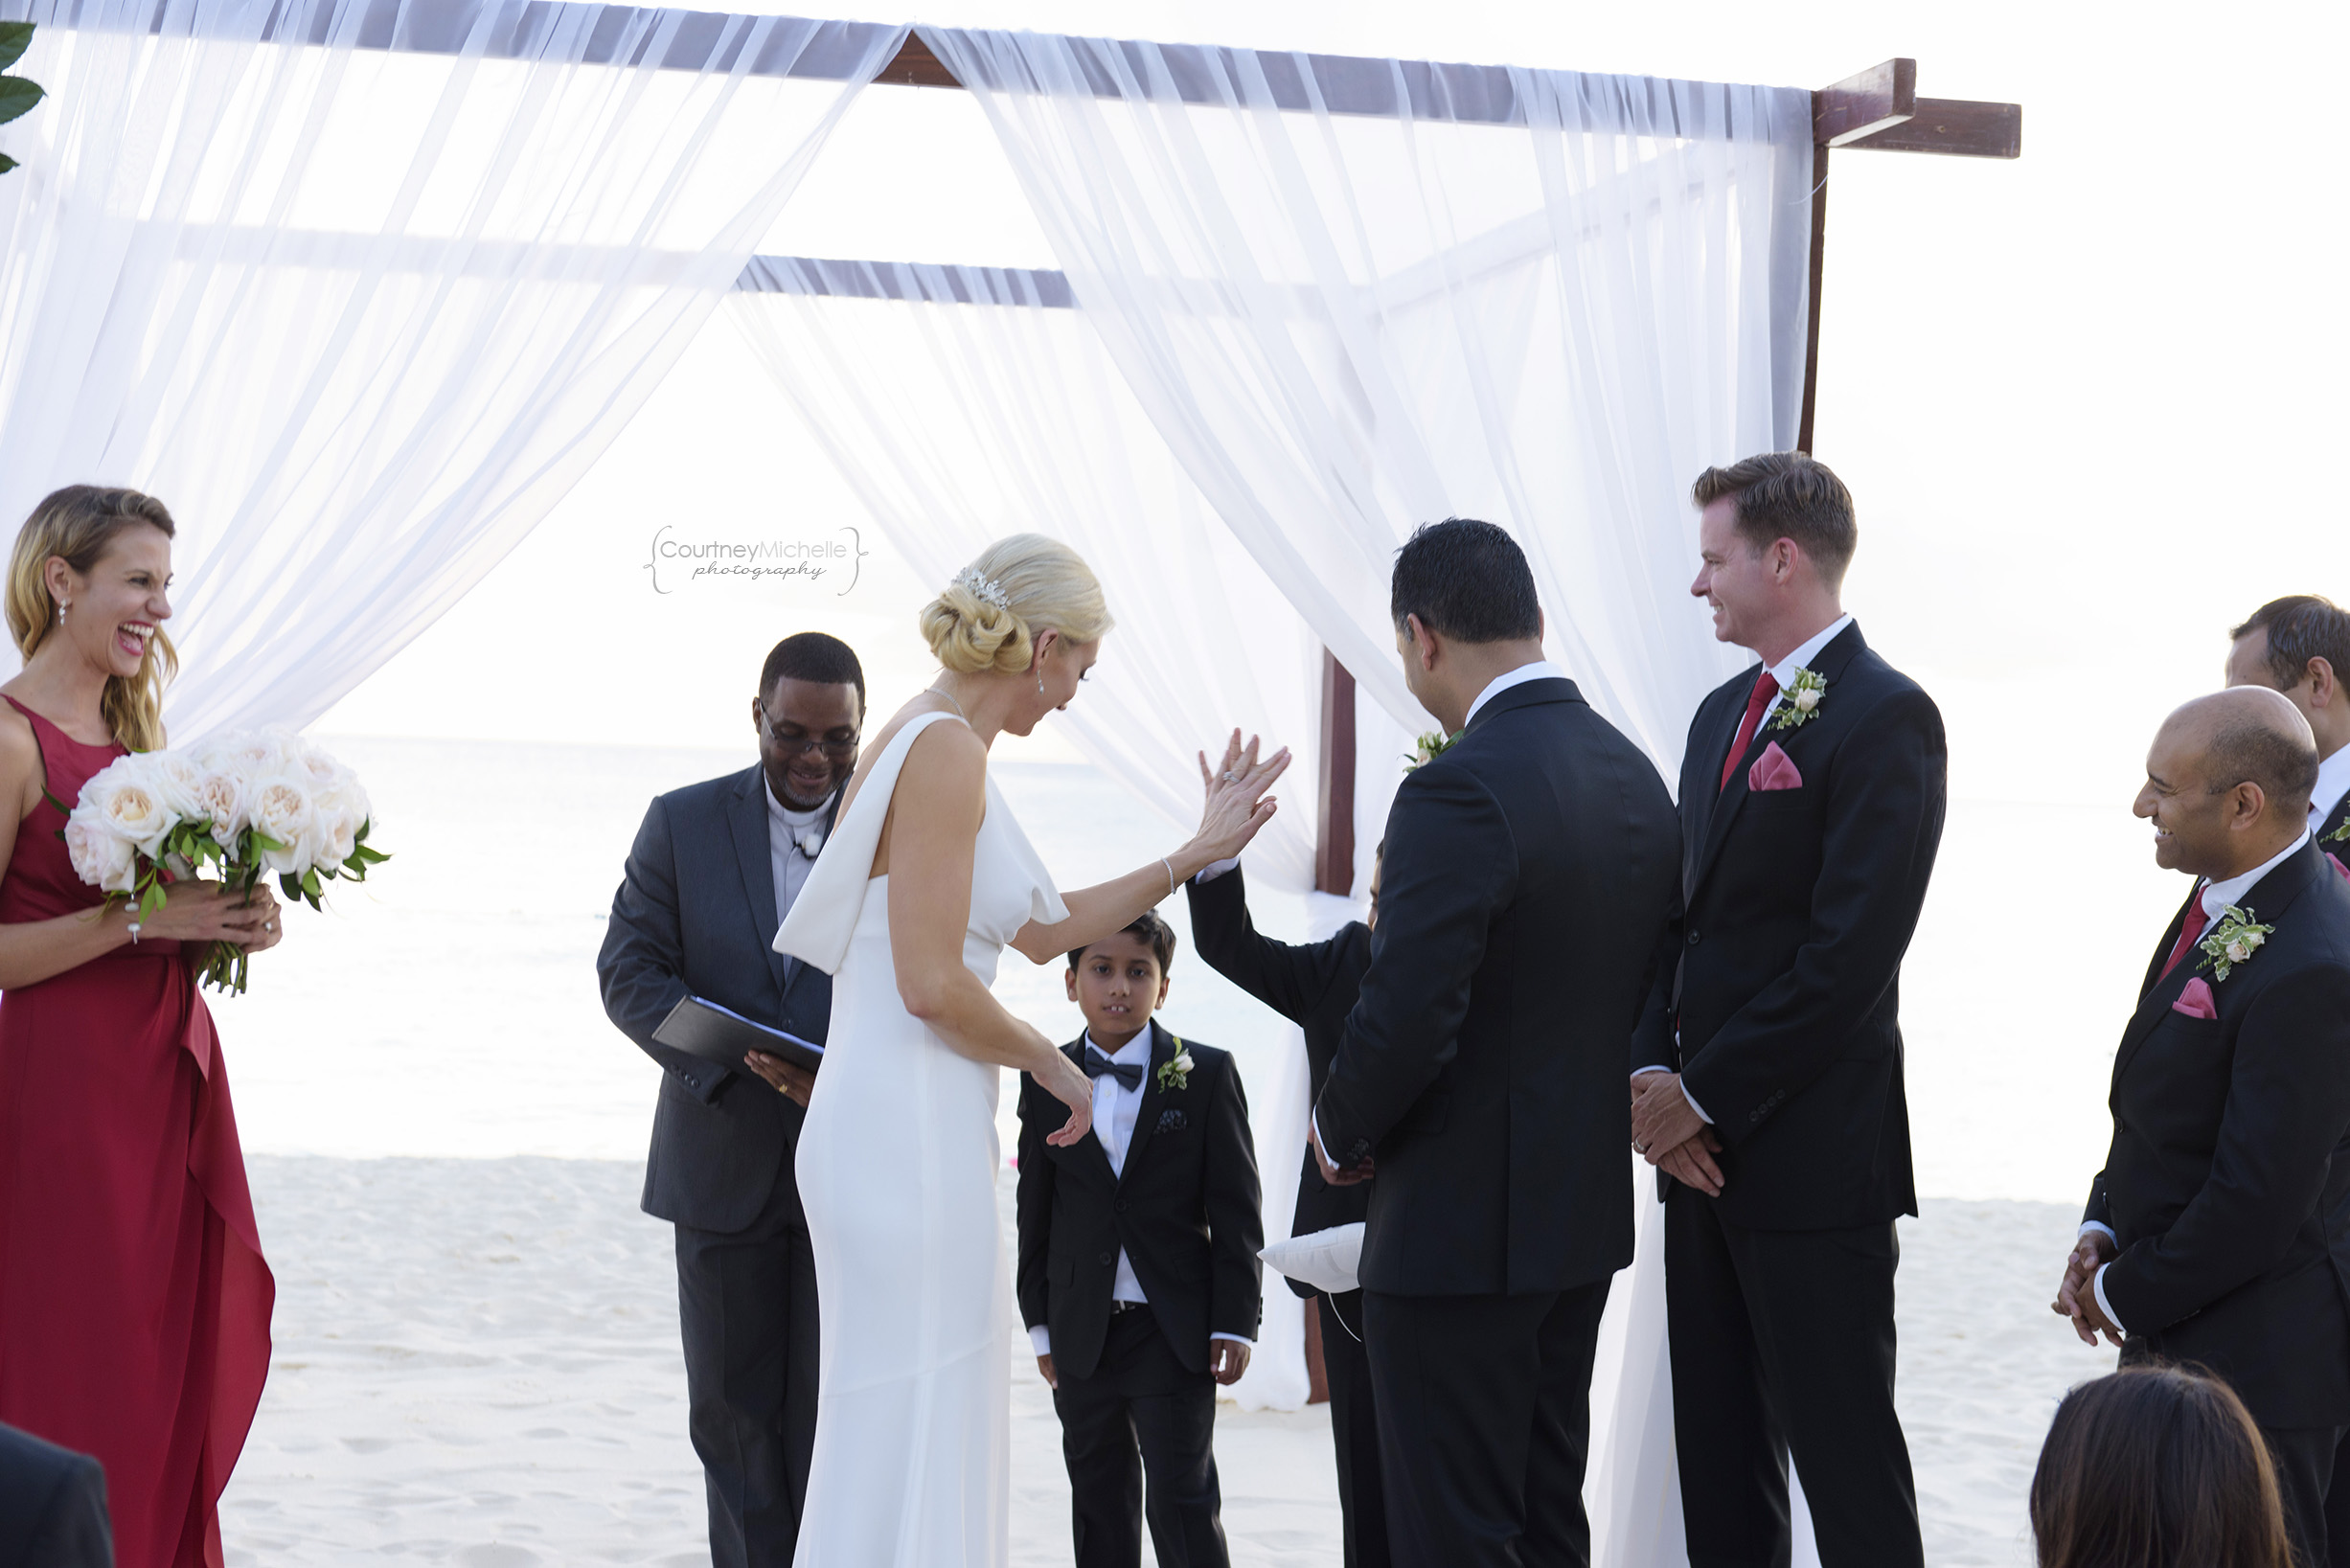 grand-cayman-beach-wedding-photography-by-courtney-laper©CopyrightCMP-LeaAnneRaj-7754.jpg